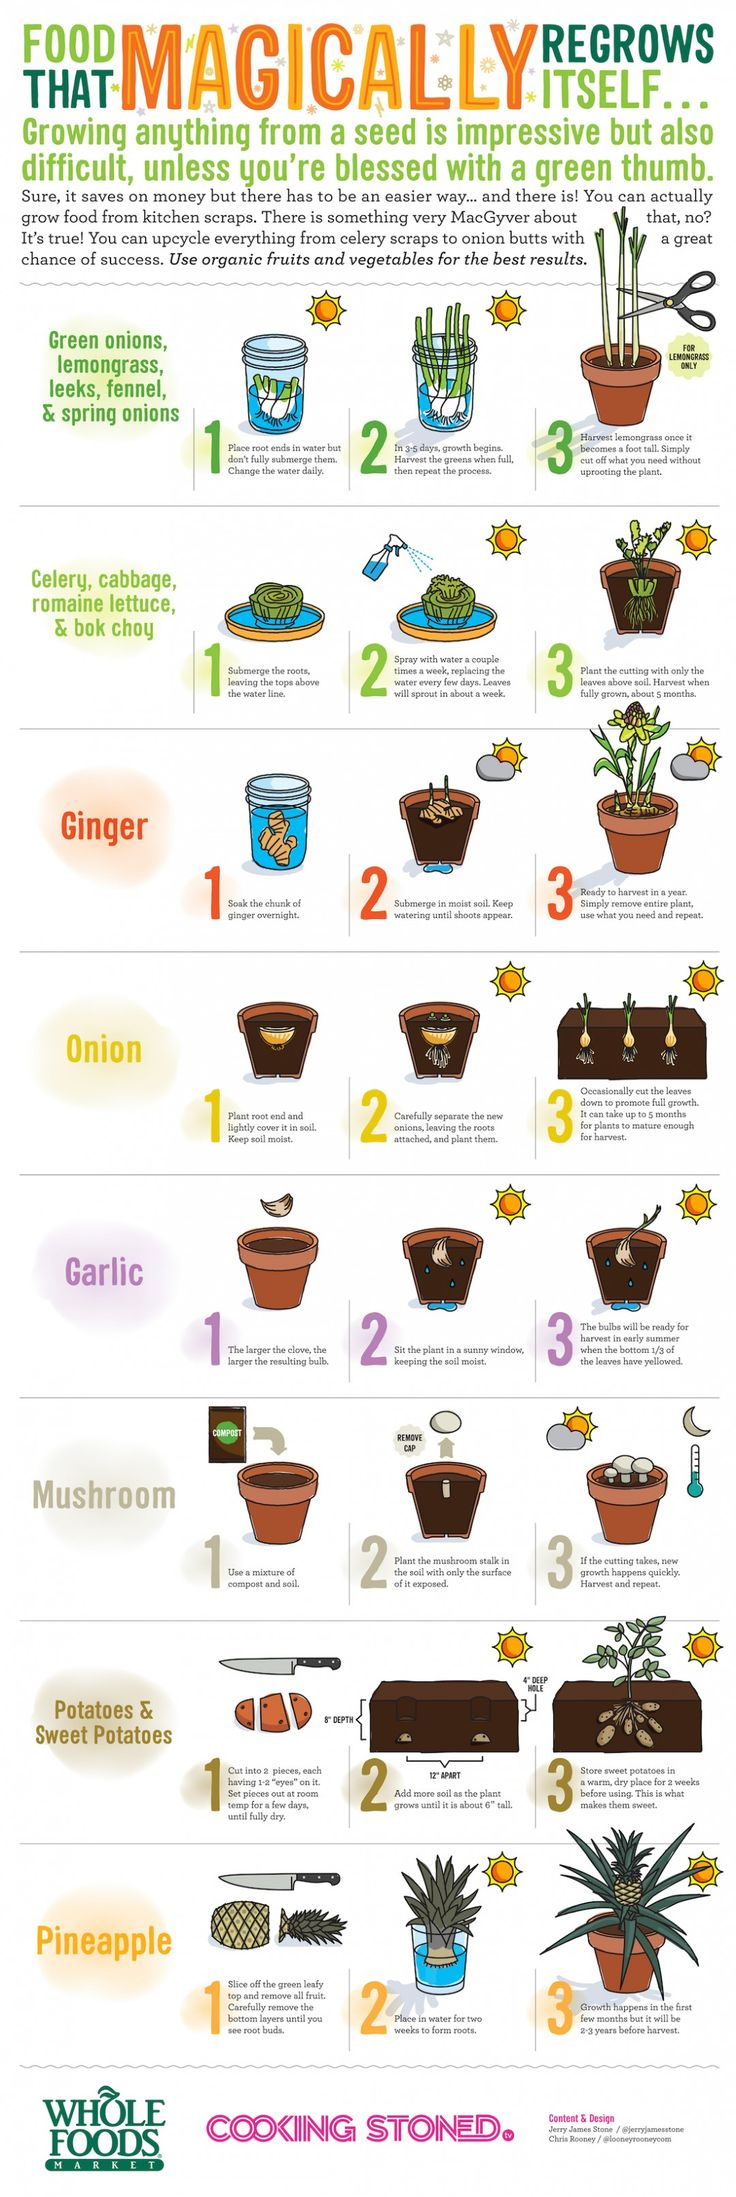 Foods that re-grow